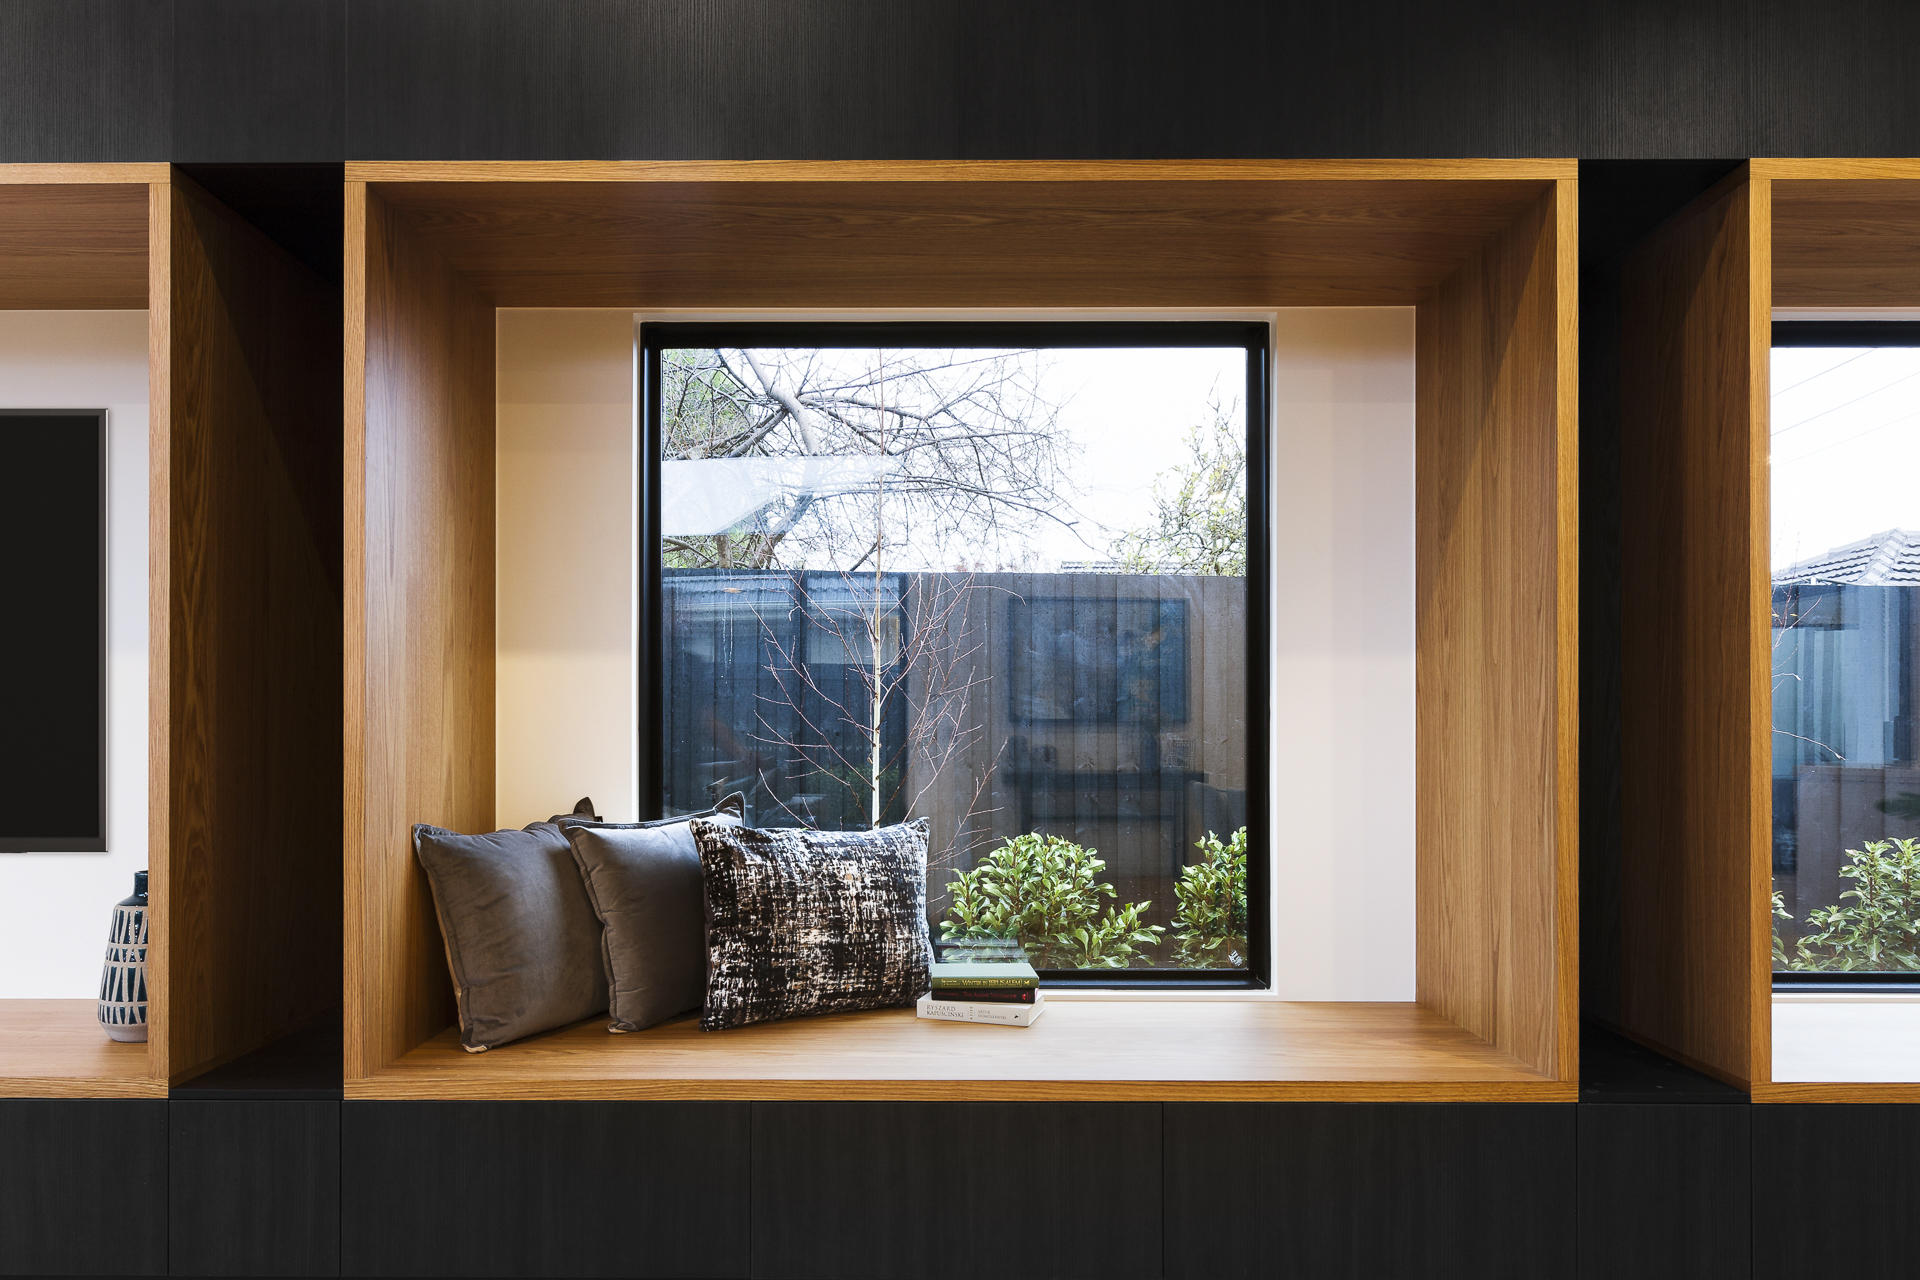 Arrangement of elements within the space is equally important when appealing to different buyers. Showcasing the optimal use of space is fundamental to styling any display home.